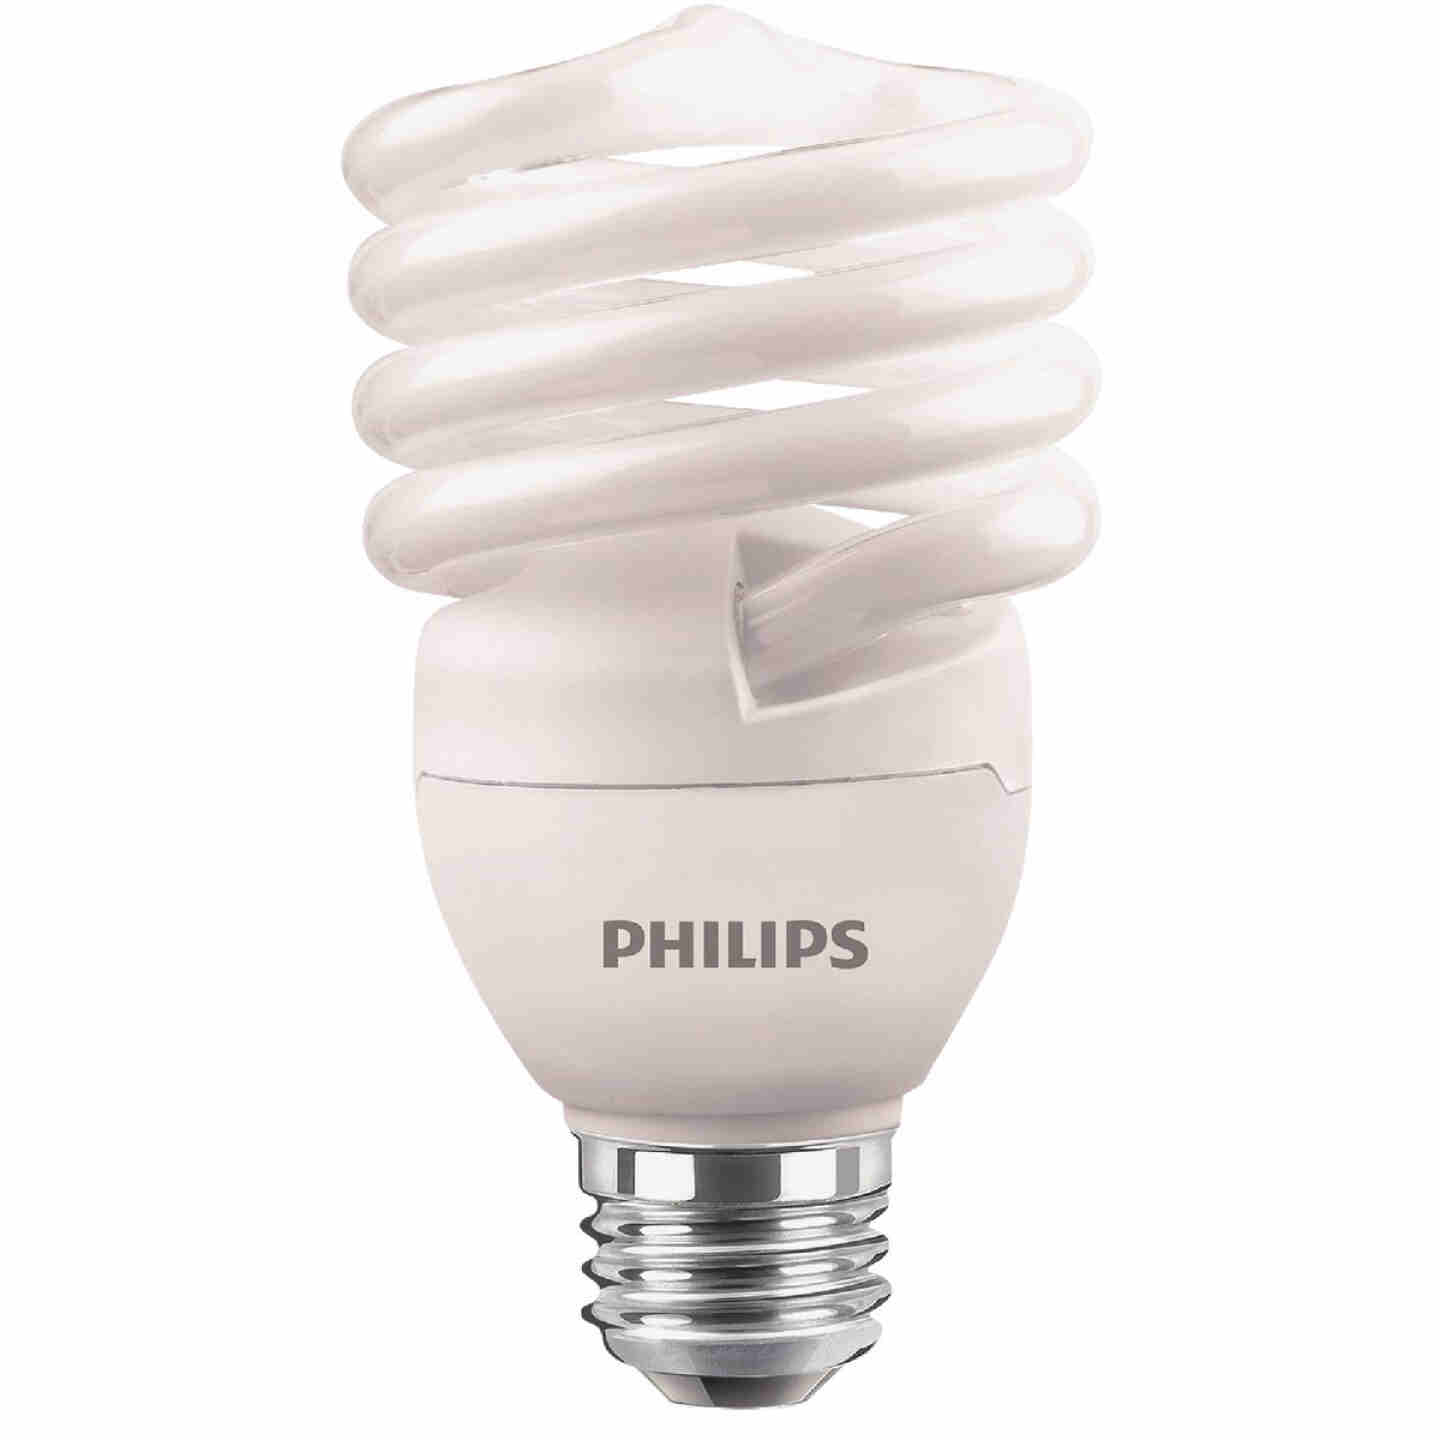 Philips Energy Saver 100W Equivalent Soft White Medium Base T2 Spiral CFL Light Bulb (4-Pack) Image 3